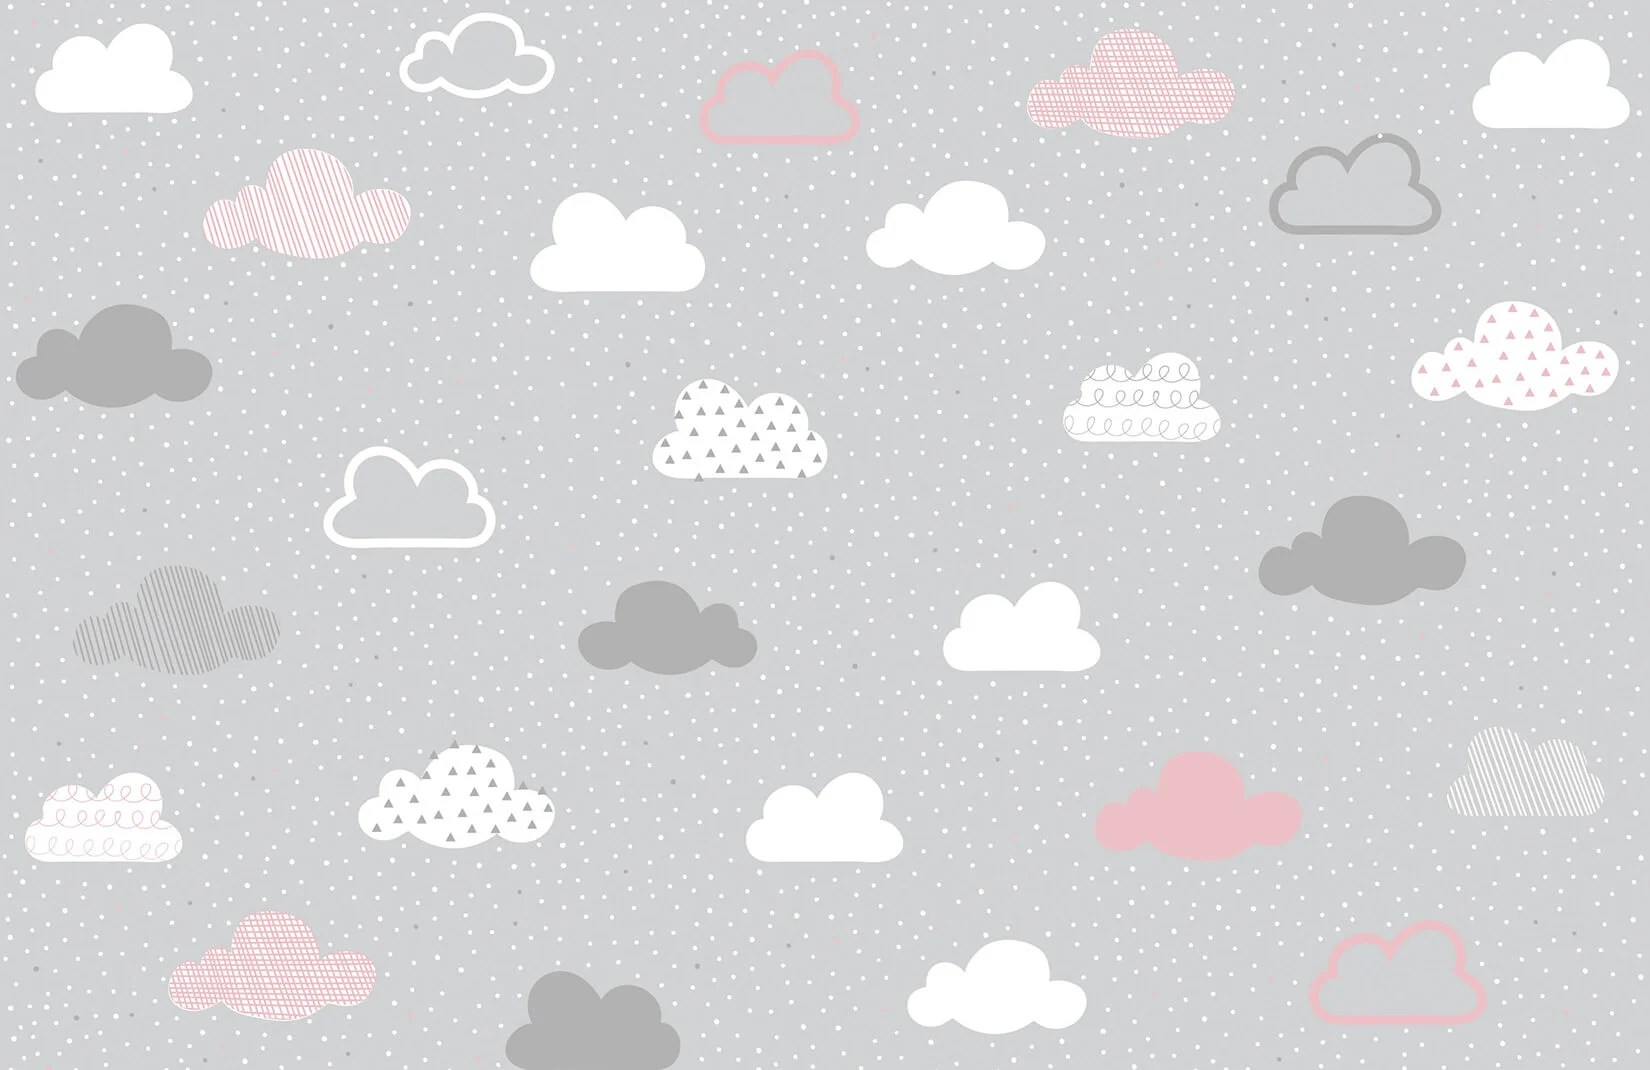 Cute White Baby Rabbits Wallpapers Pink And Grey Cloud Wallpaper Cute Cloud Pattern